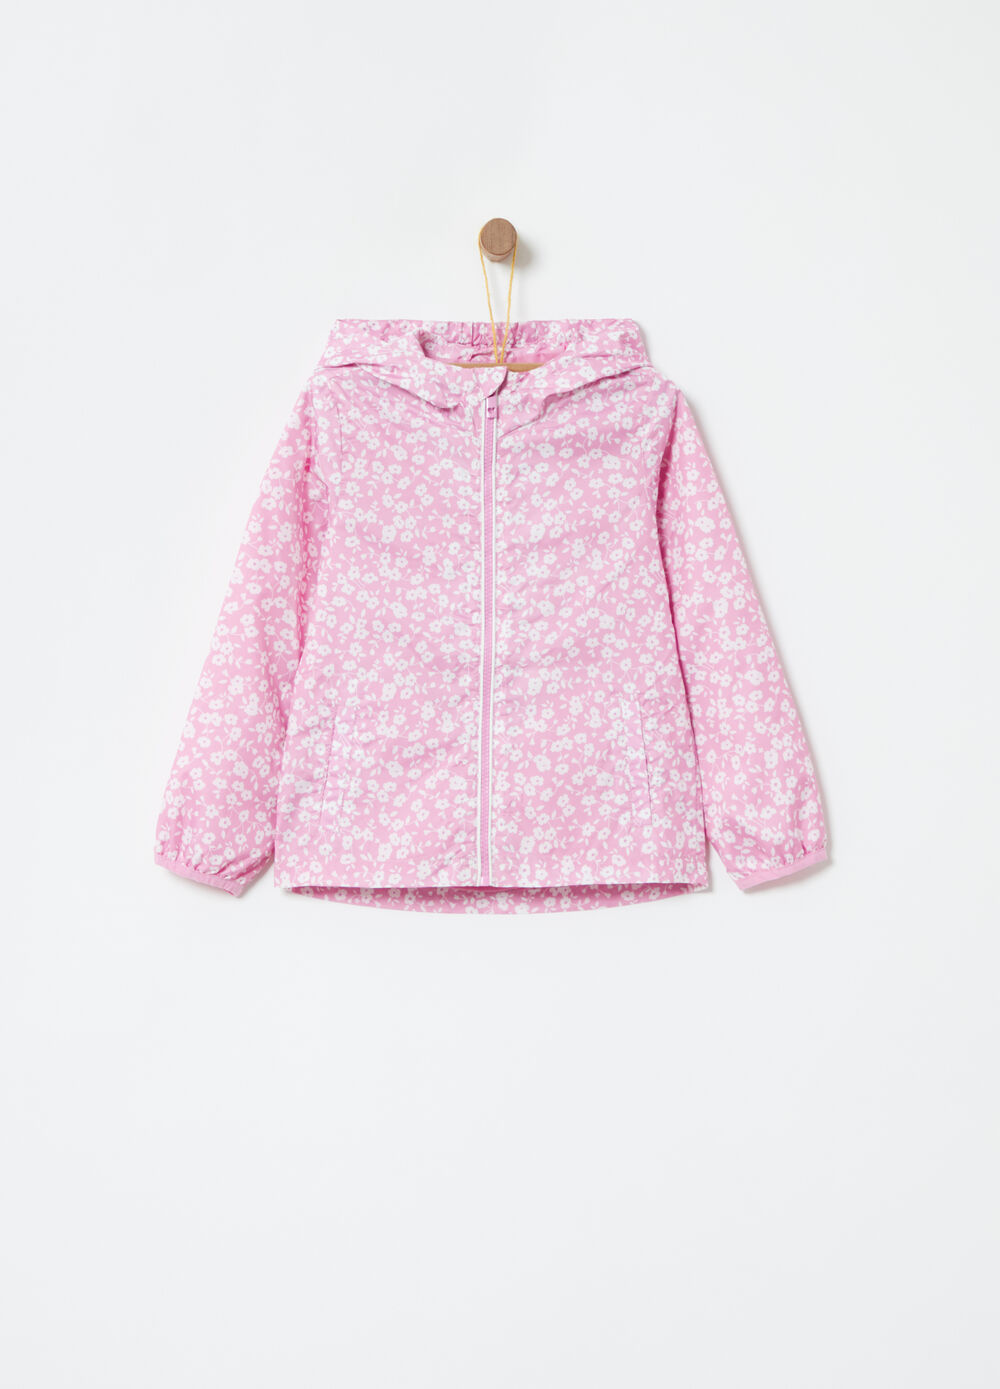 Jacket with all-over floral print